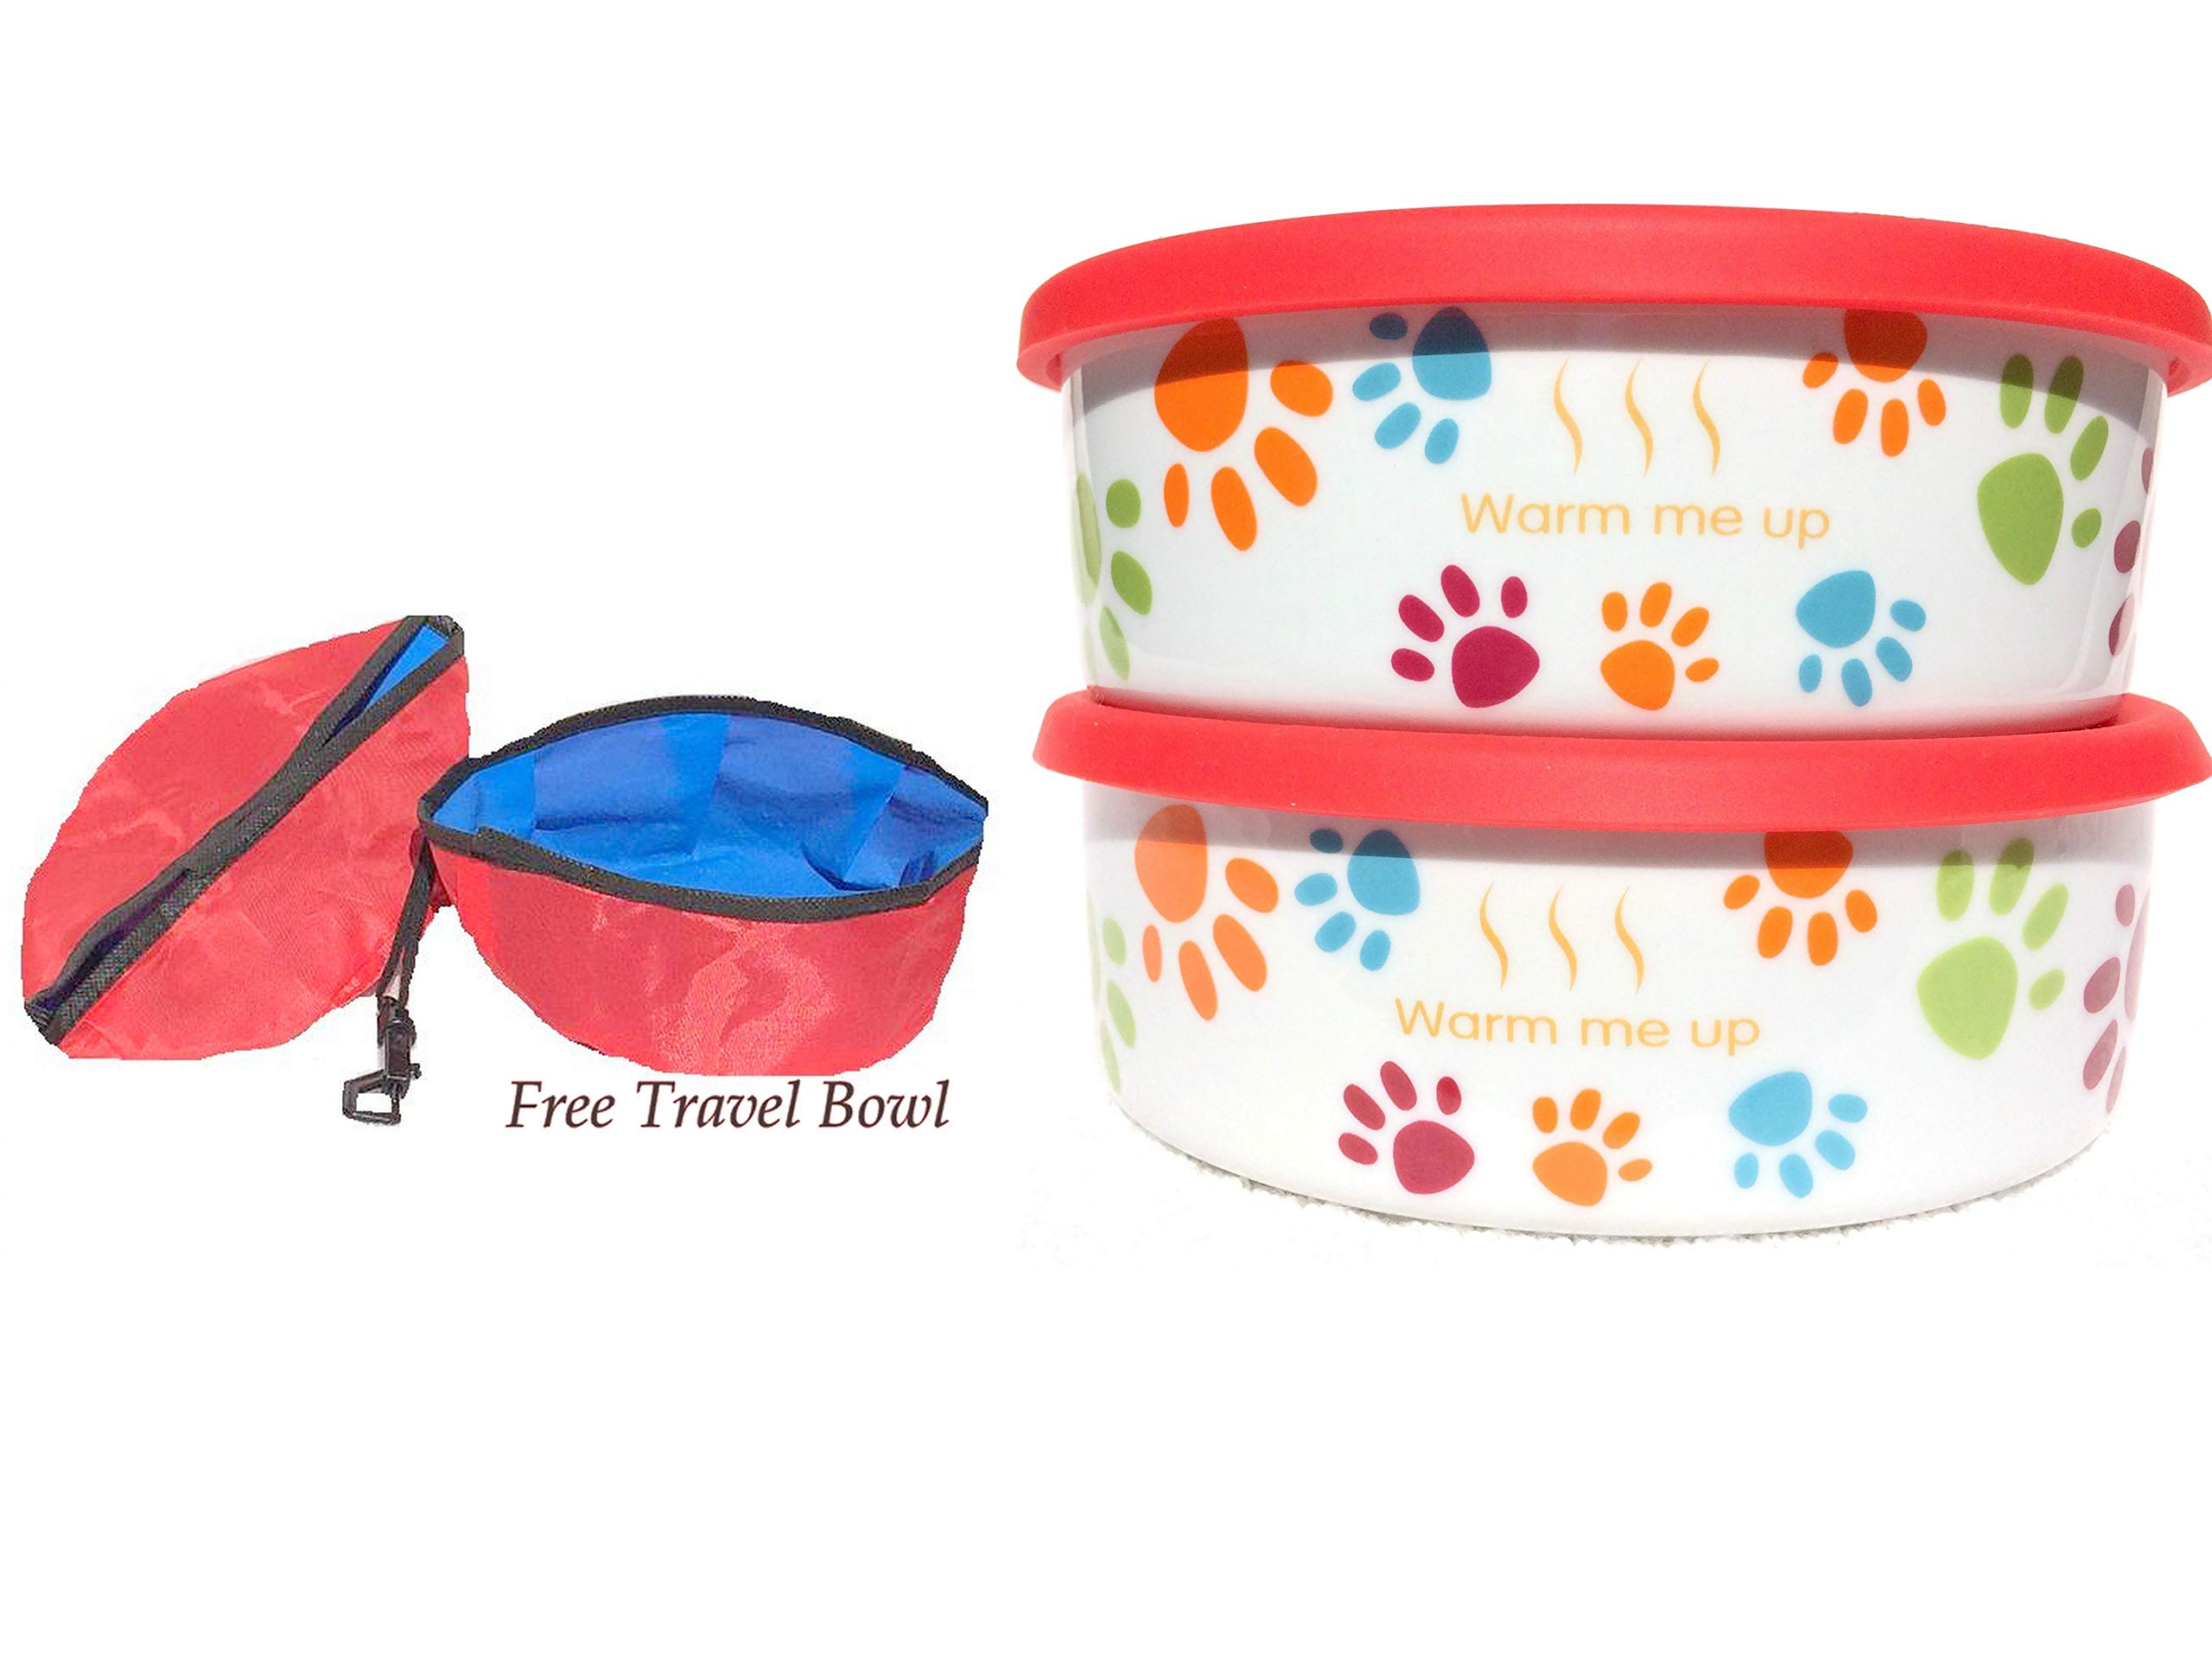 2 Dog/ Cat Bowls with Lid plus a Free Pet Travel Bowl. This Pet Dish Set is FDA approved porcelain material+ airtight storage lid plus collapsible Pet Travel Bowl for dog cat food or water by Quality Line (Image #4)